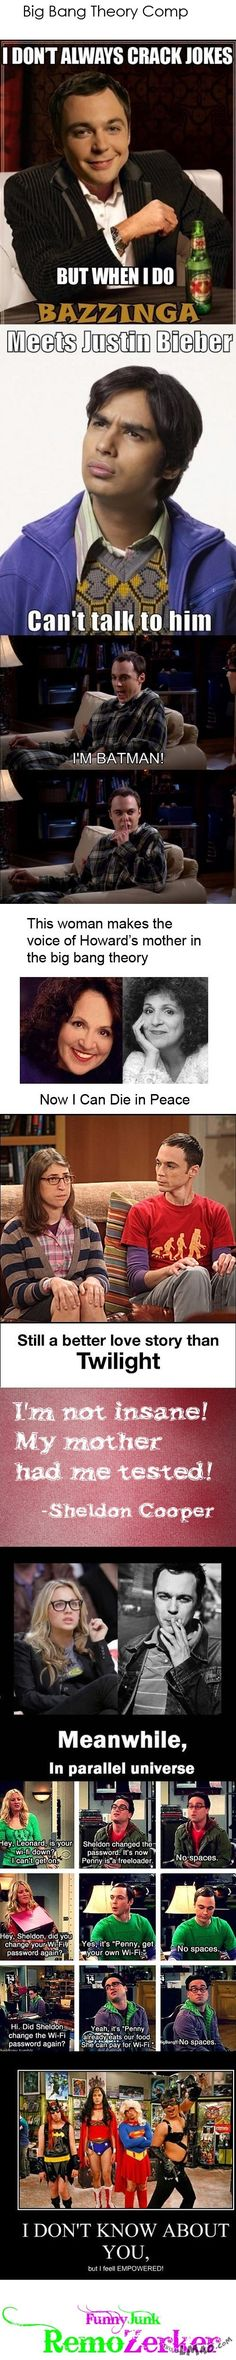 Will this make you laugh? Big Bang Theory